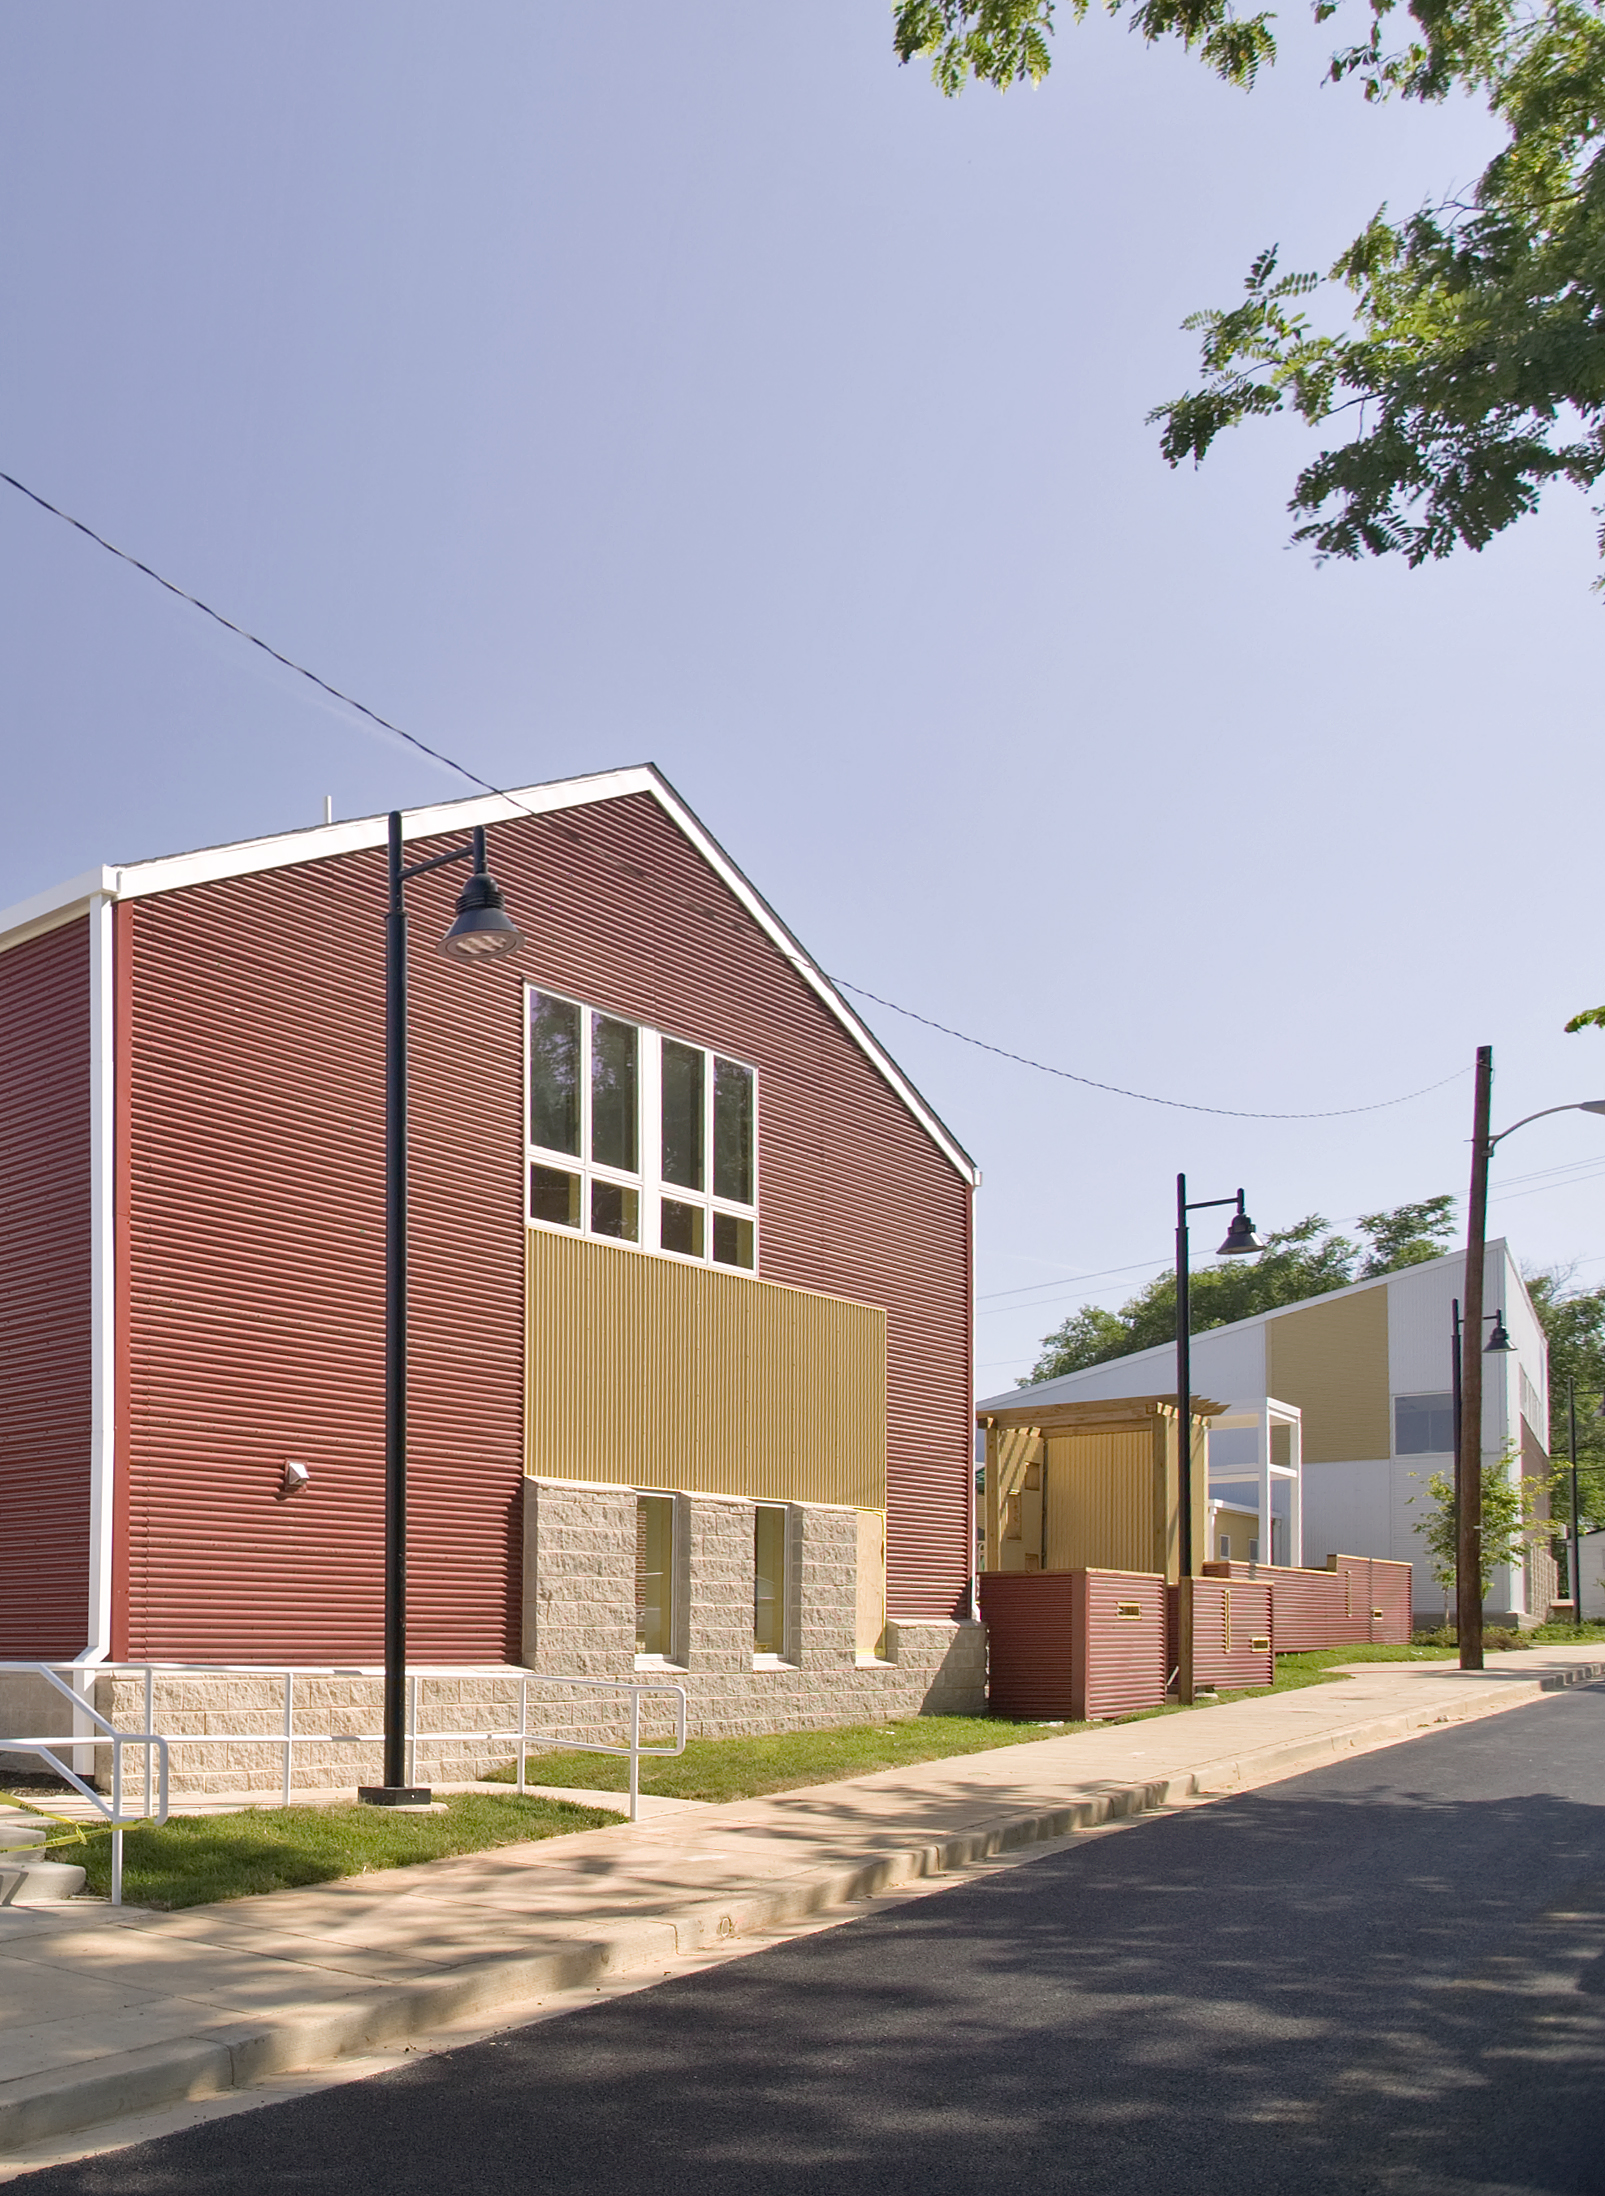 Pimlico Road Community Center